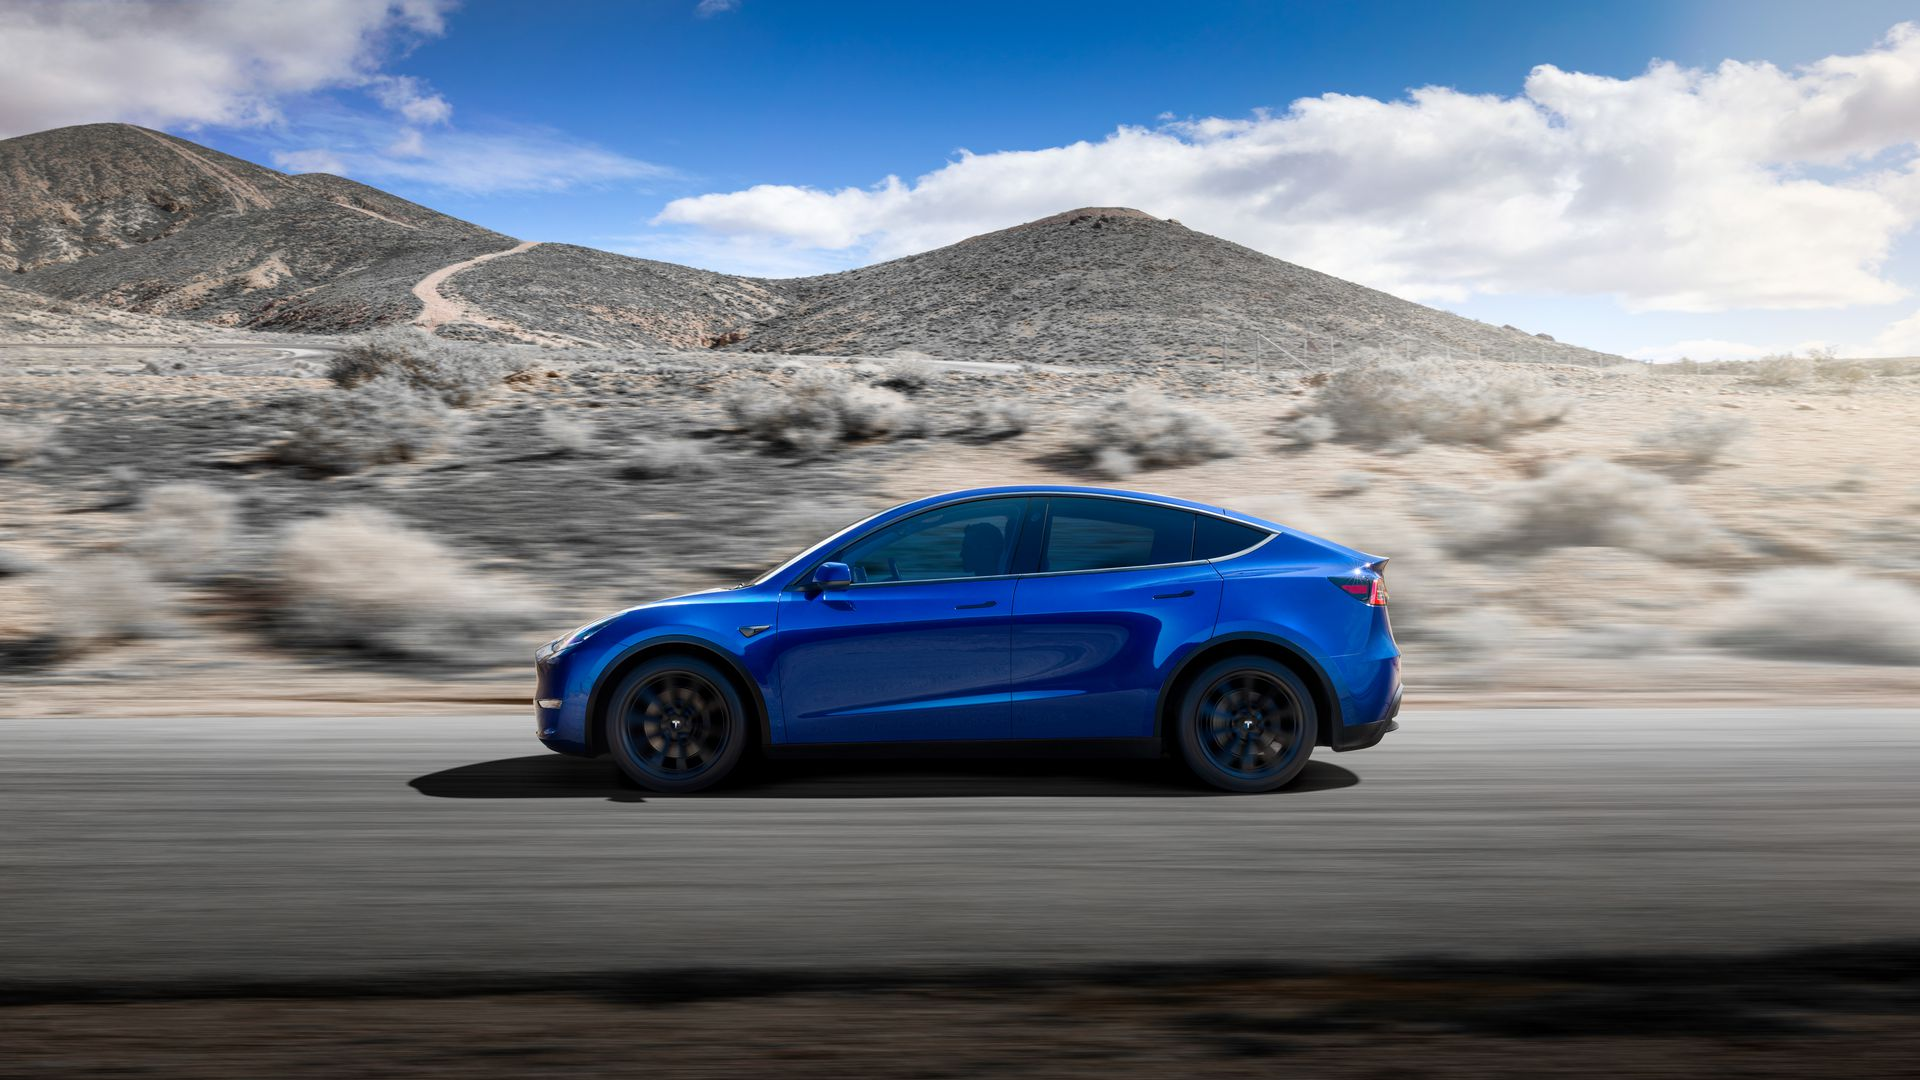 Image of Tesla Model Y crossover